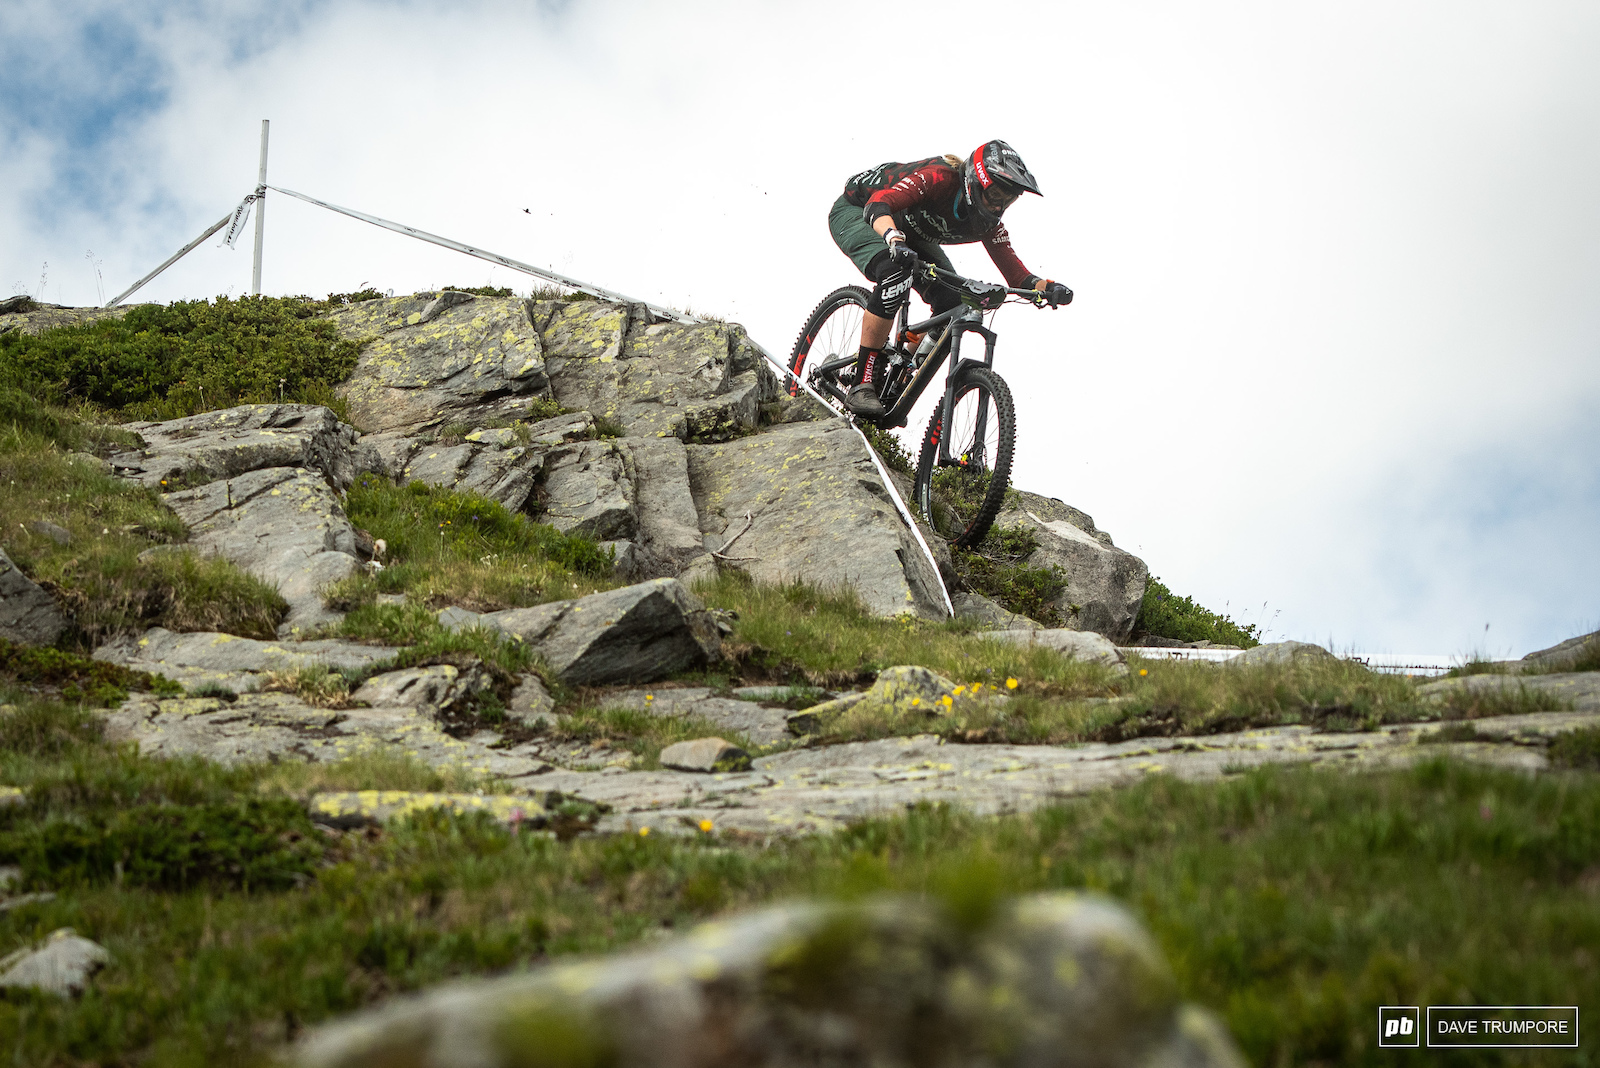 A great ride from Anita Gehrig landed her in 4th in La Thuile.